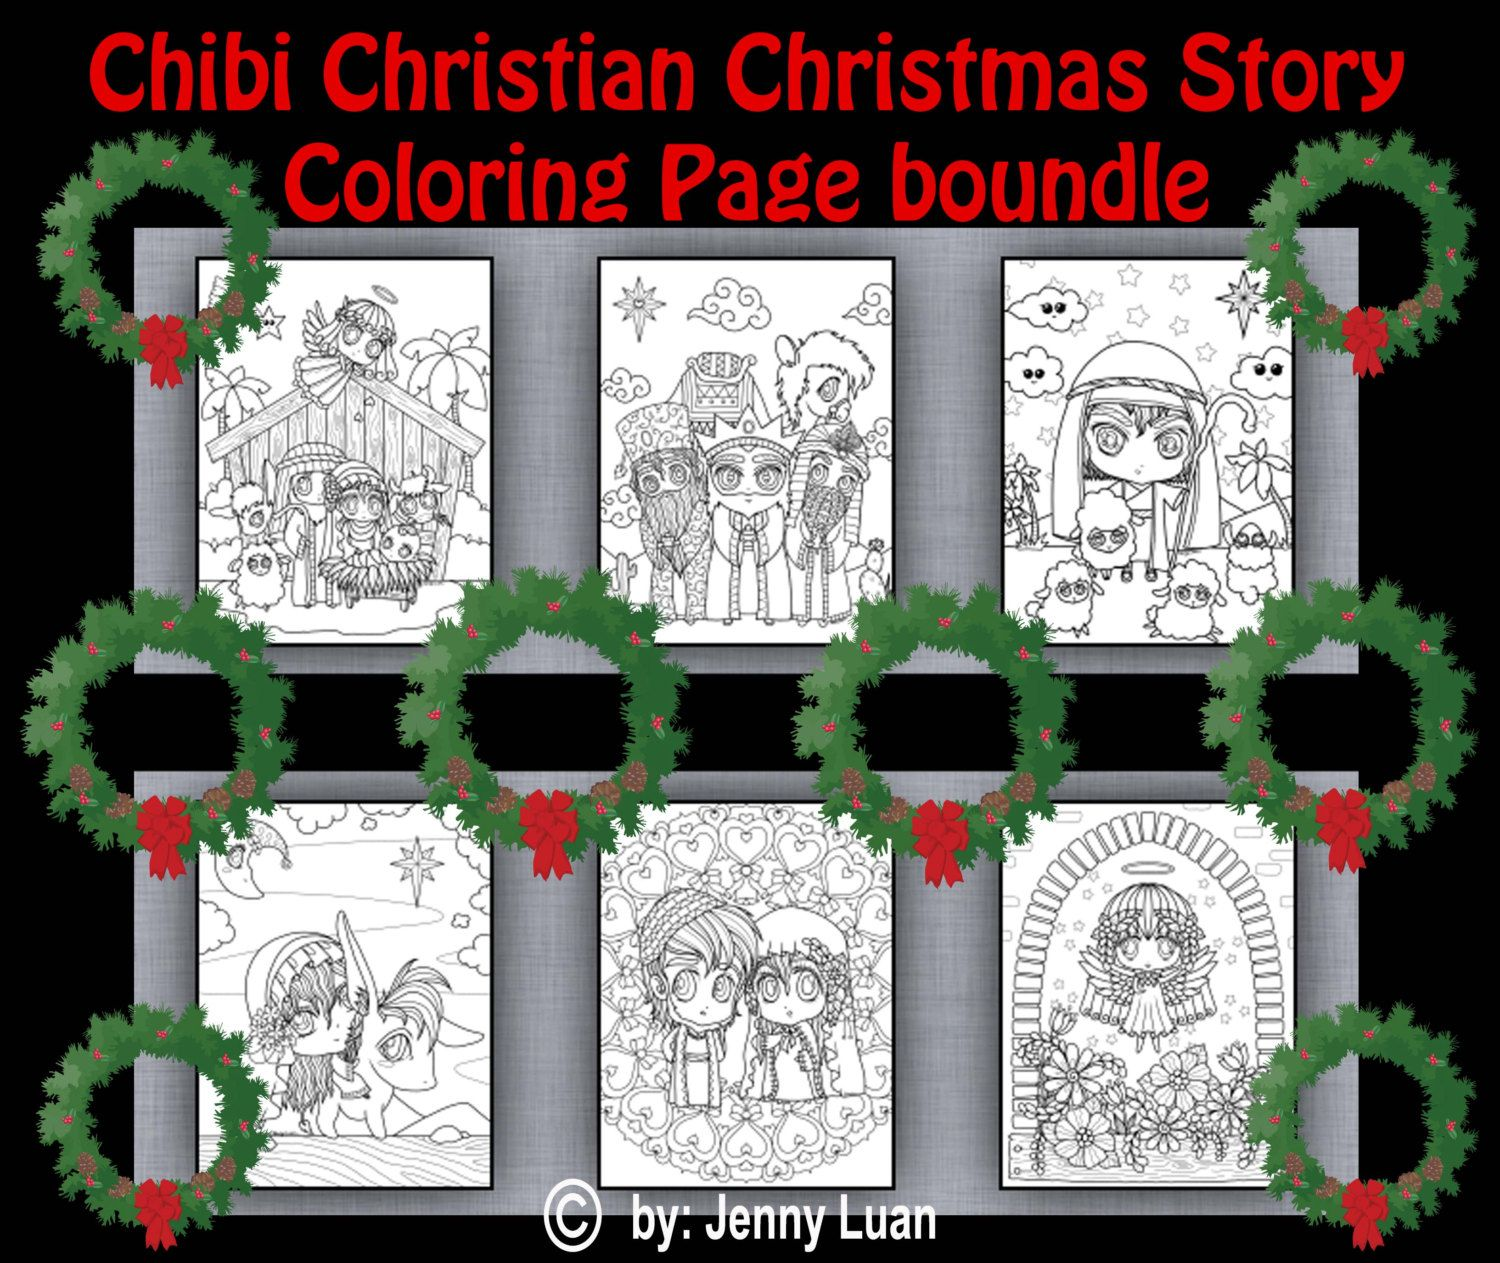 Chibi Christian Christmas Story Coloring Page Bundles for Adult ...